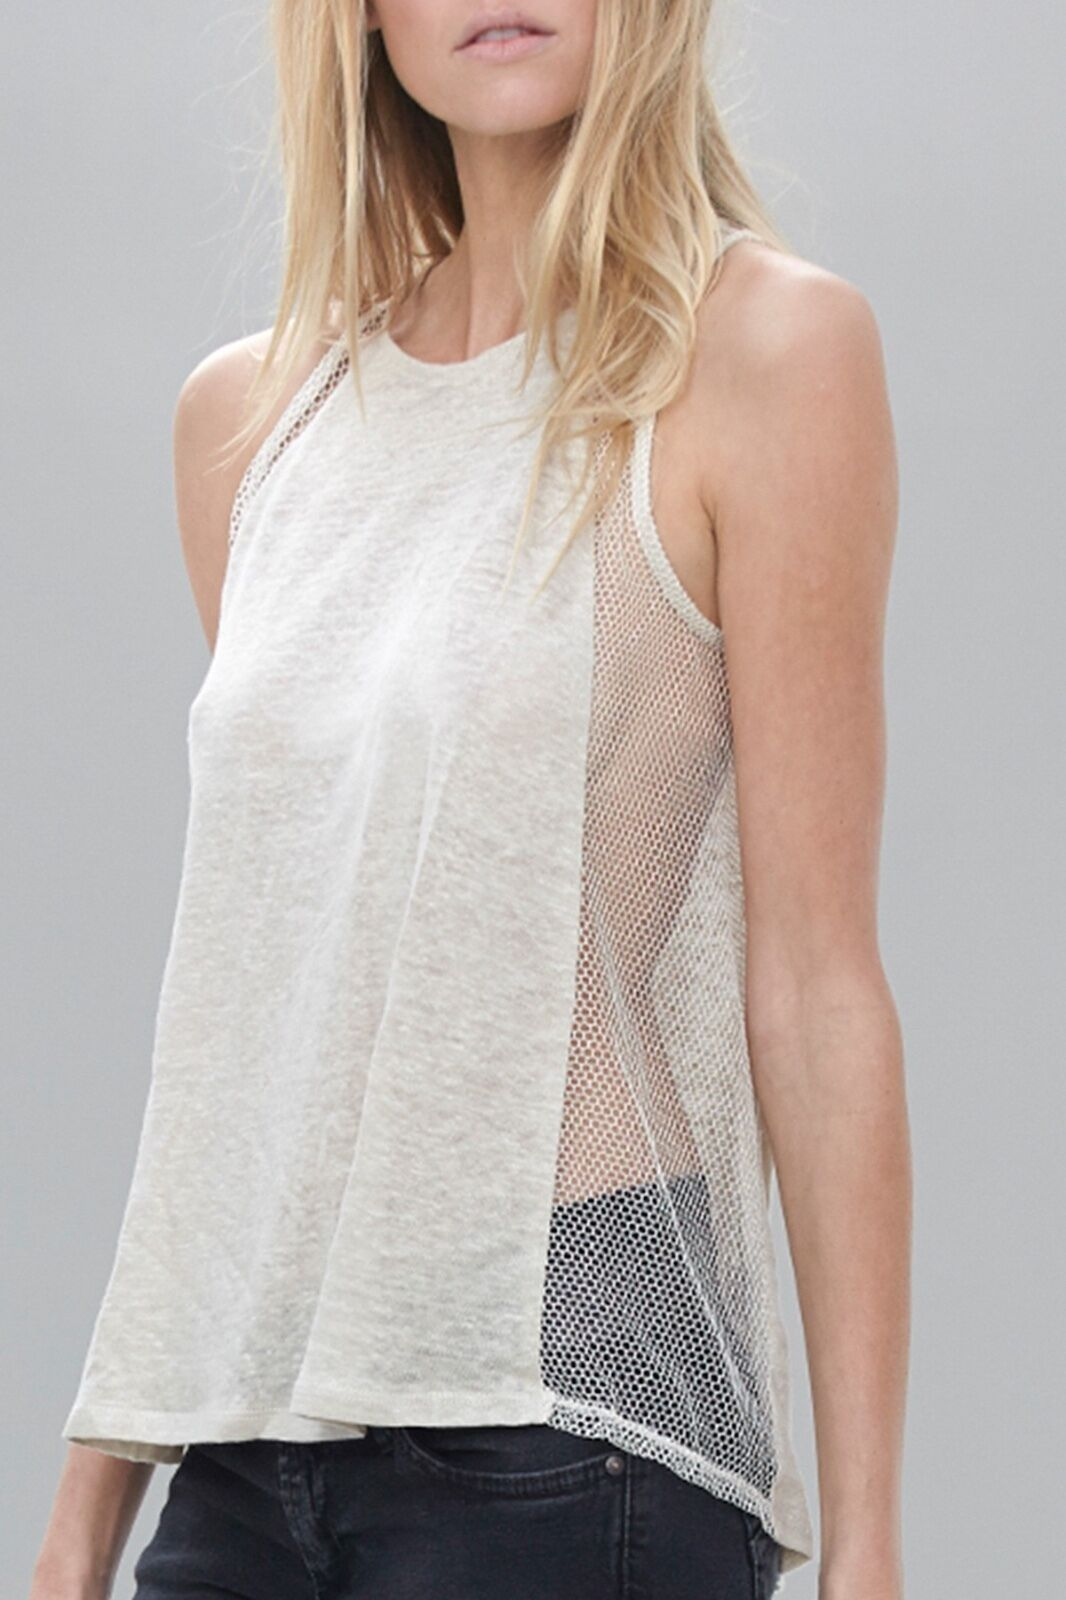 NWT Hrar Side Net Tank XS sheer clubbing made in USA